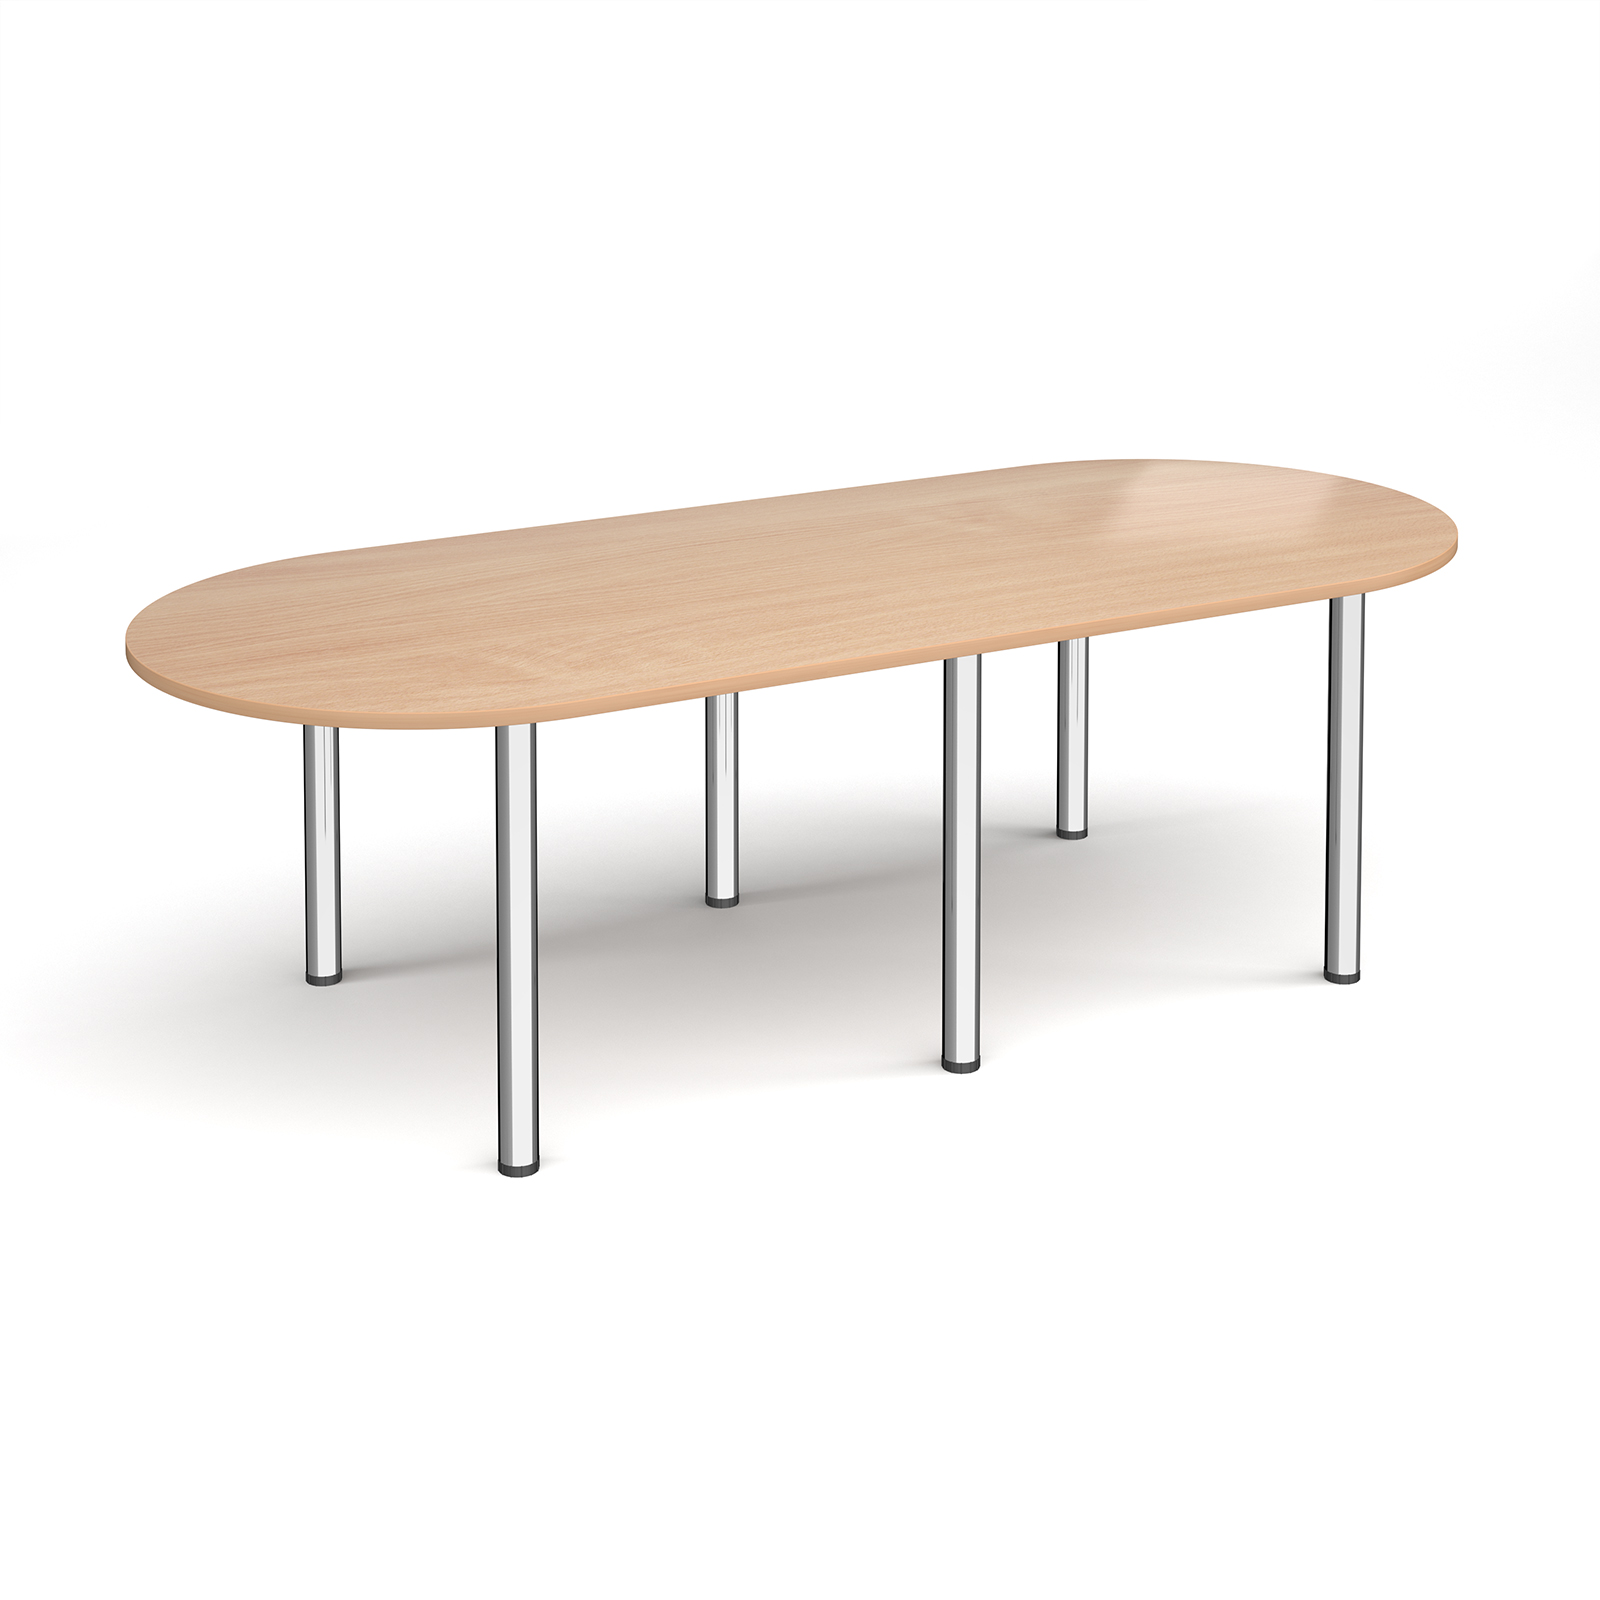 Boardroom / Meeting Radial end meeting table with 6 radial legs